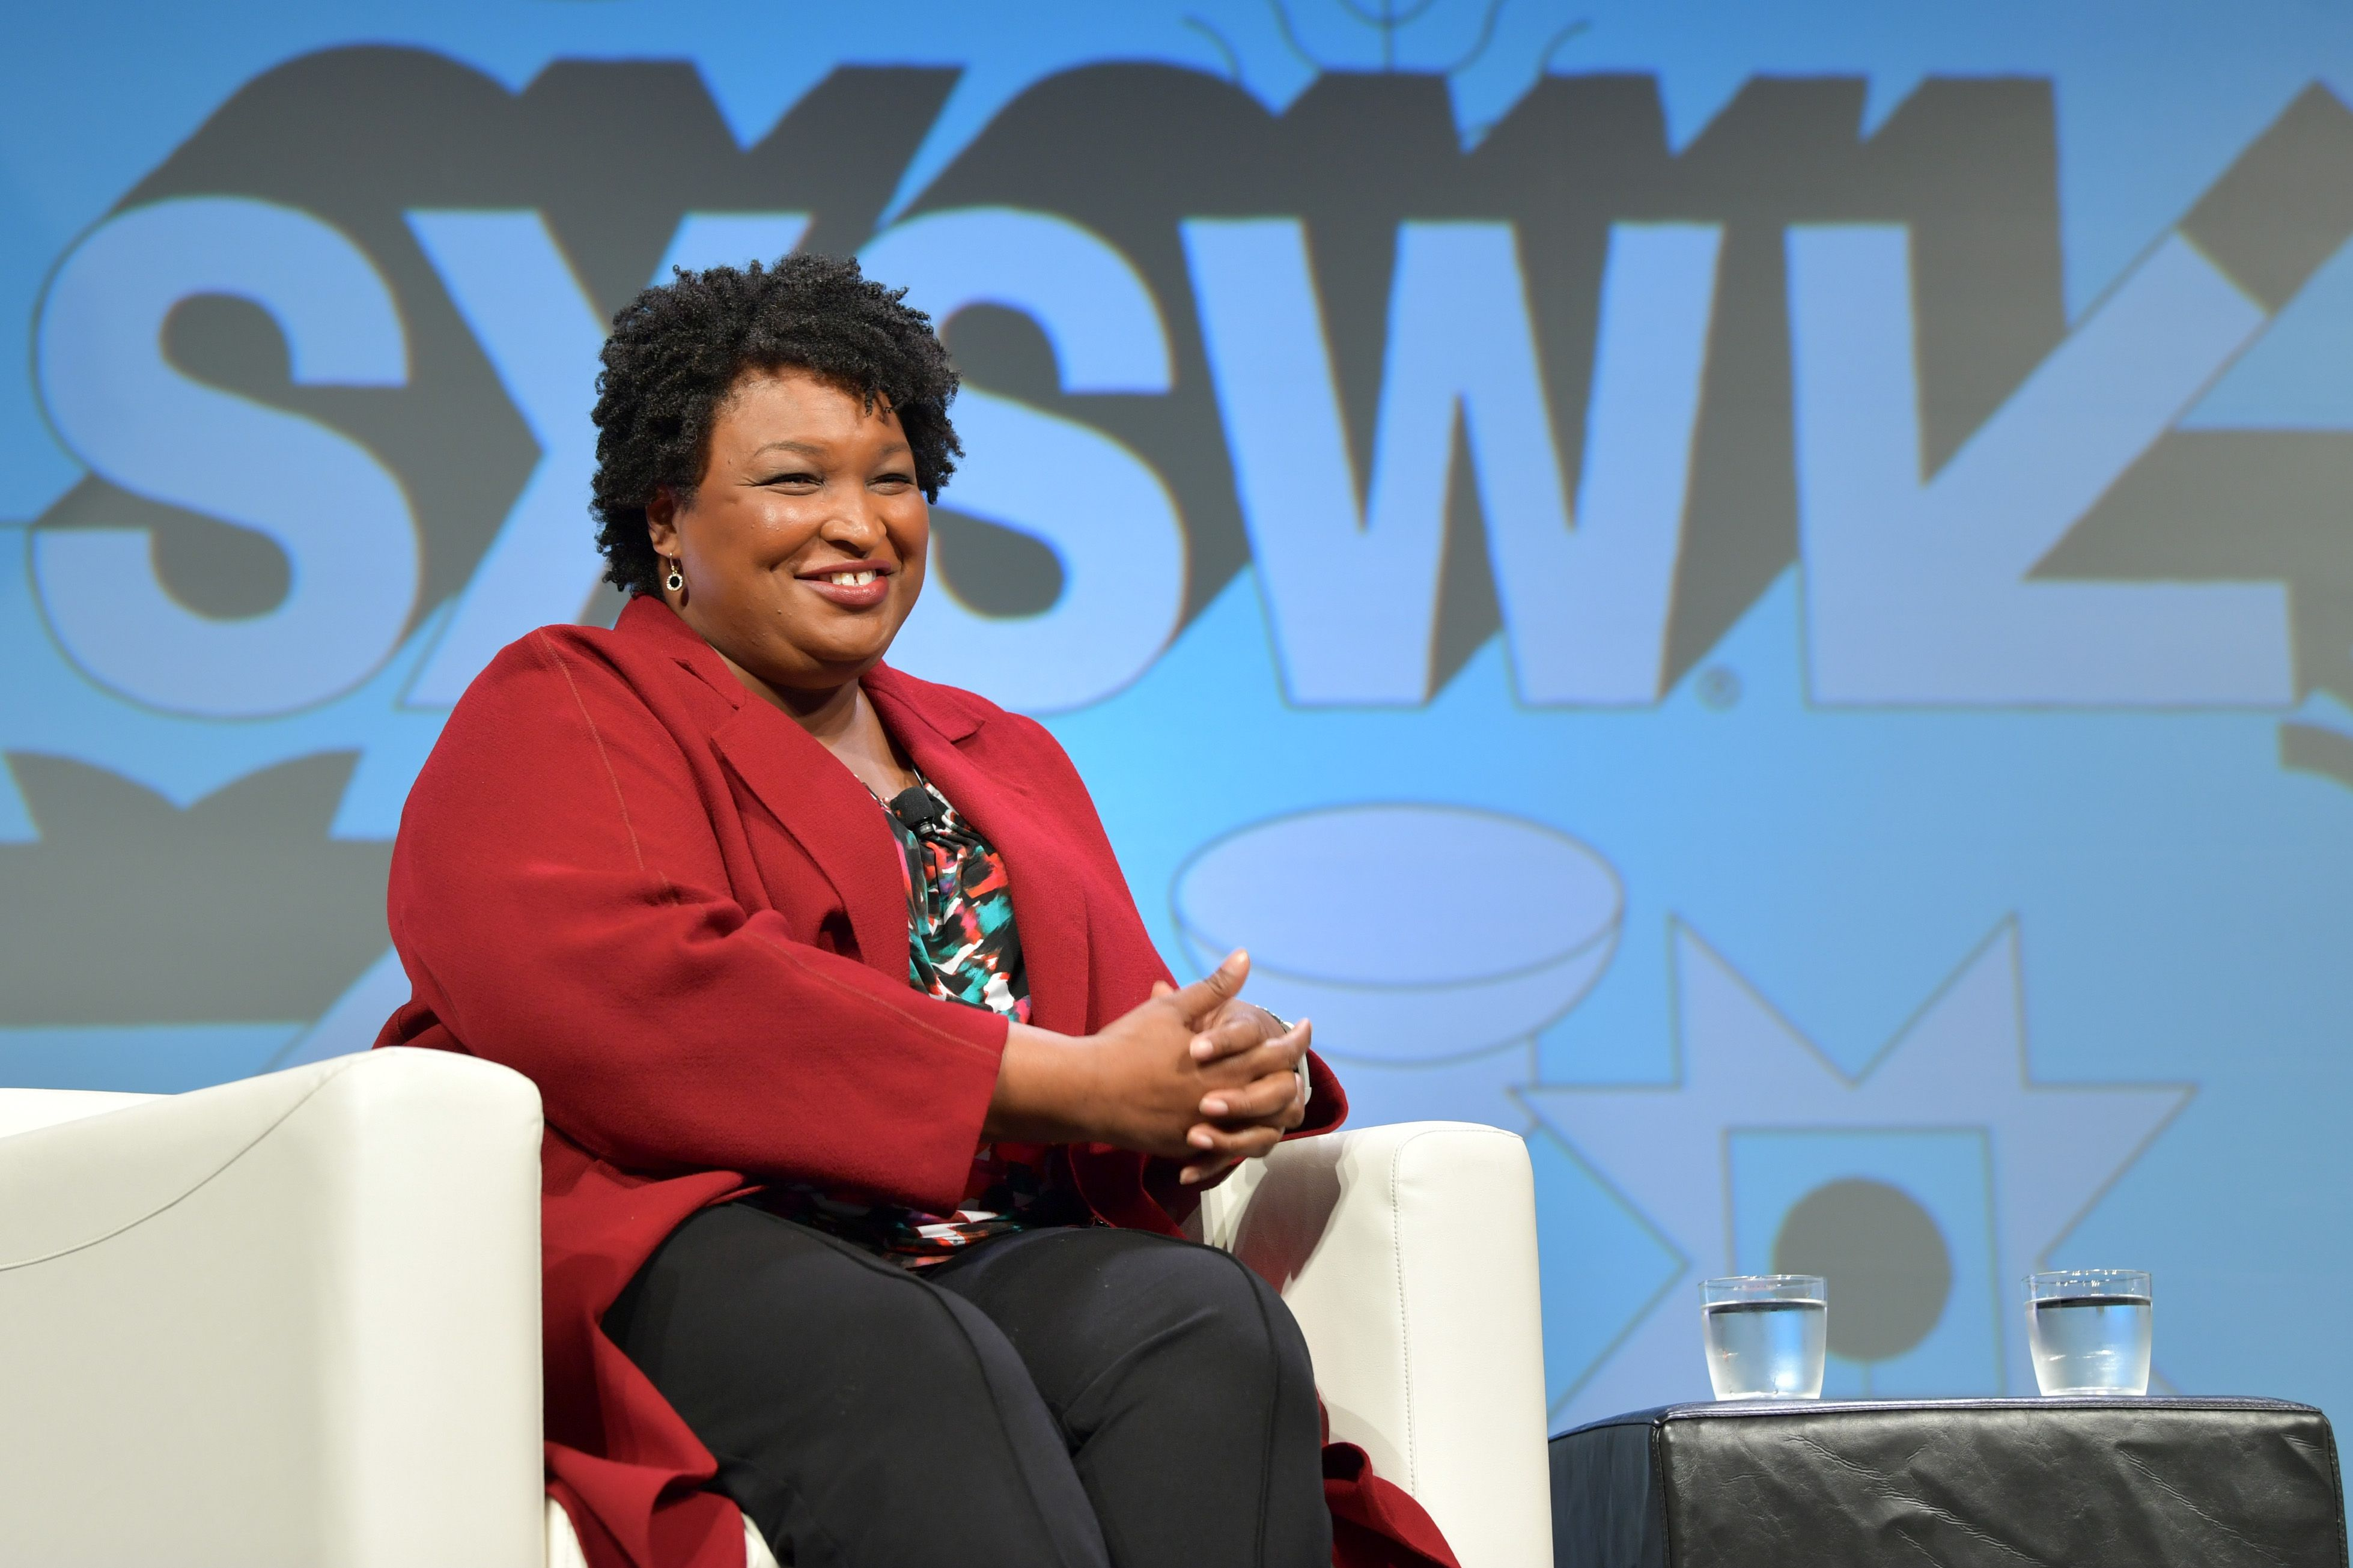 Scoop: Biden advisers debate Stacey Abrams as out-of-the-gate VP choice - Axios